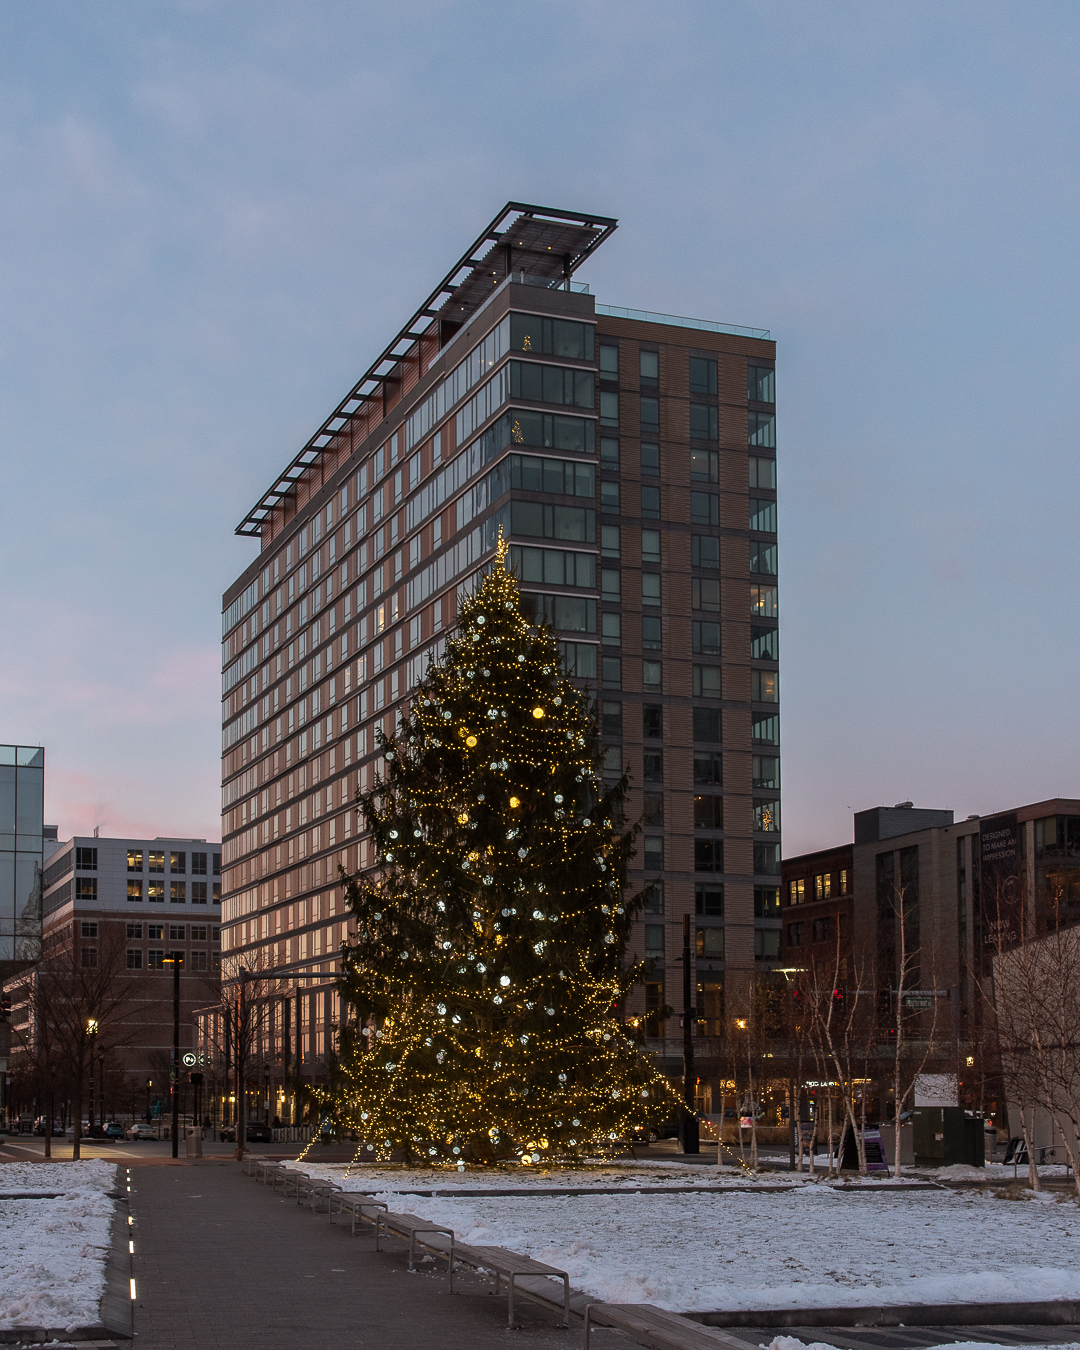 Christmas trees in Boston, holiday season